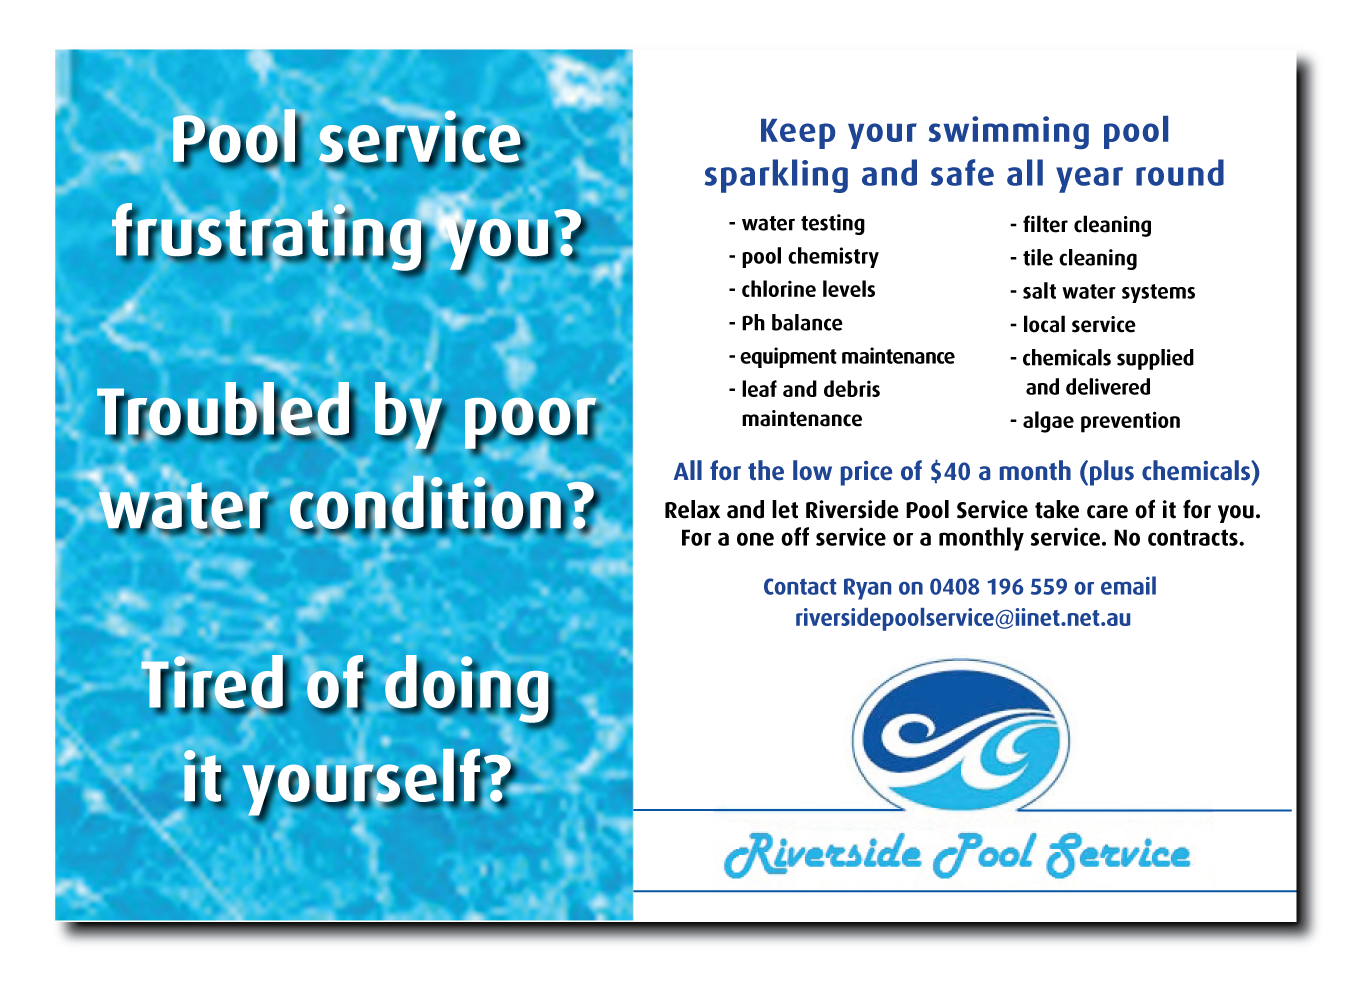 Swimming Pool Service Flyer Design : Serious modern flyer design for ryan murray a